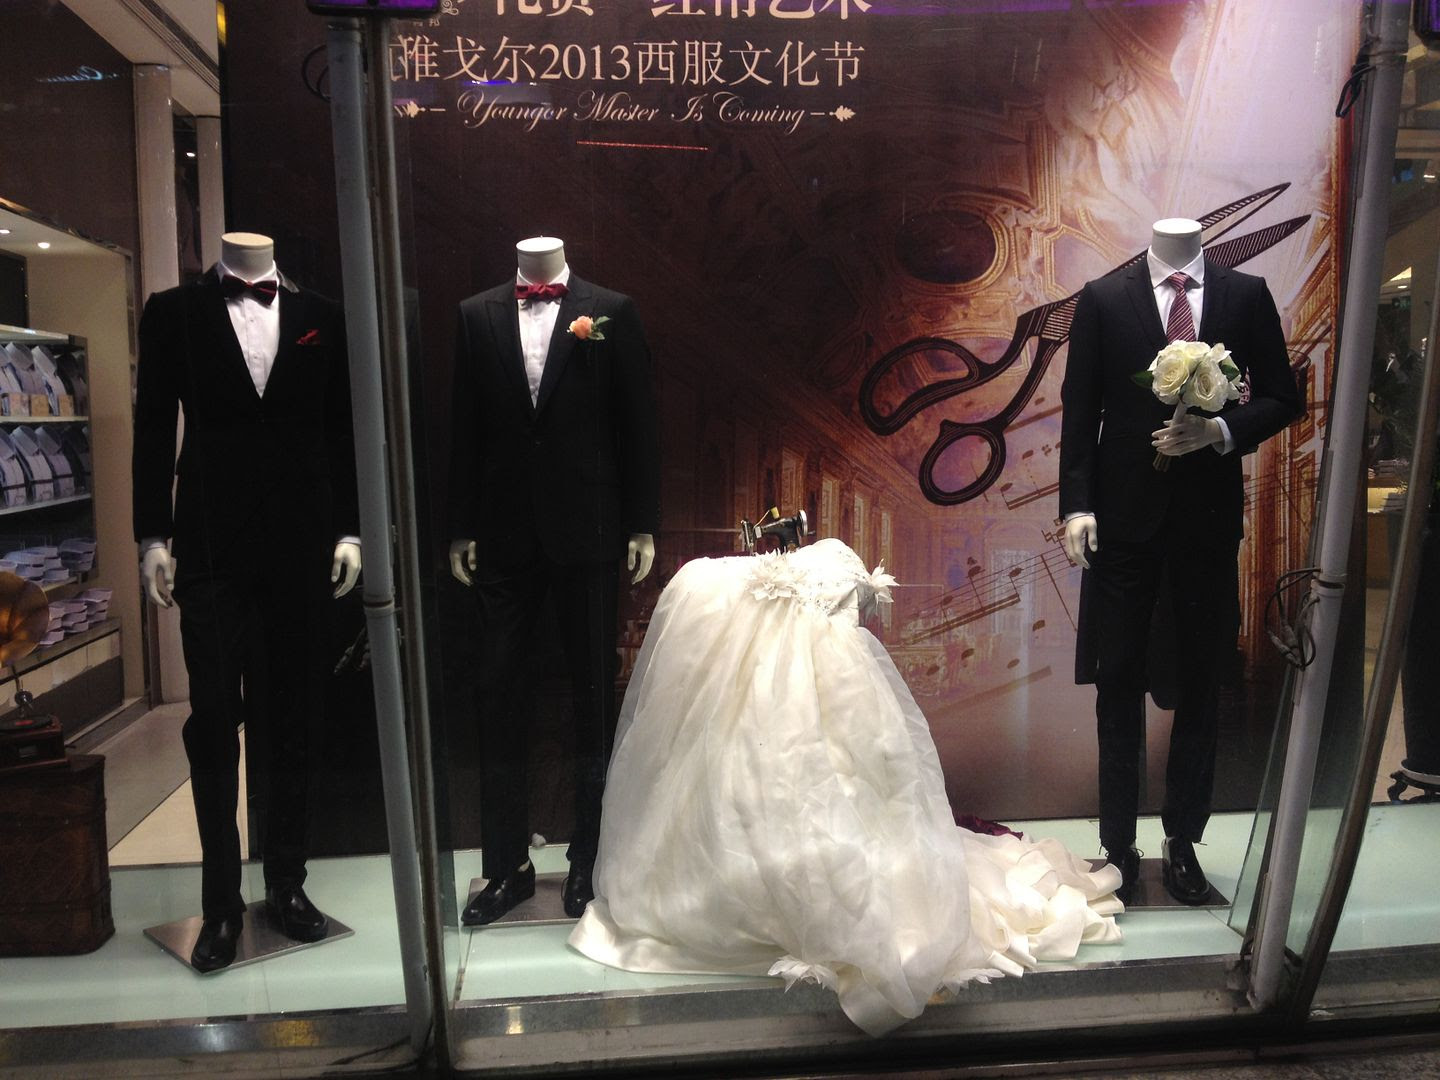 Rumpled wedding dress in Shanghai, China photo 2013-09-16201959_zps4878da7b.jpg